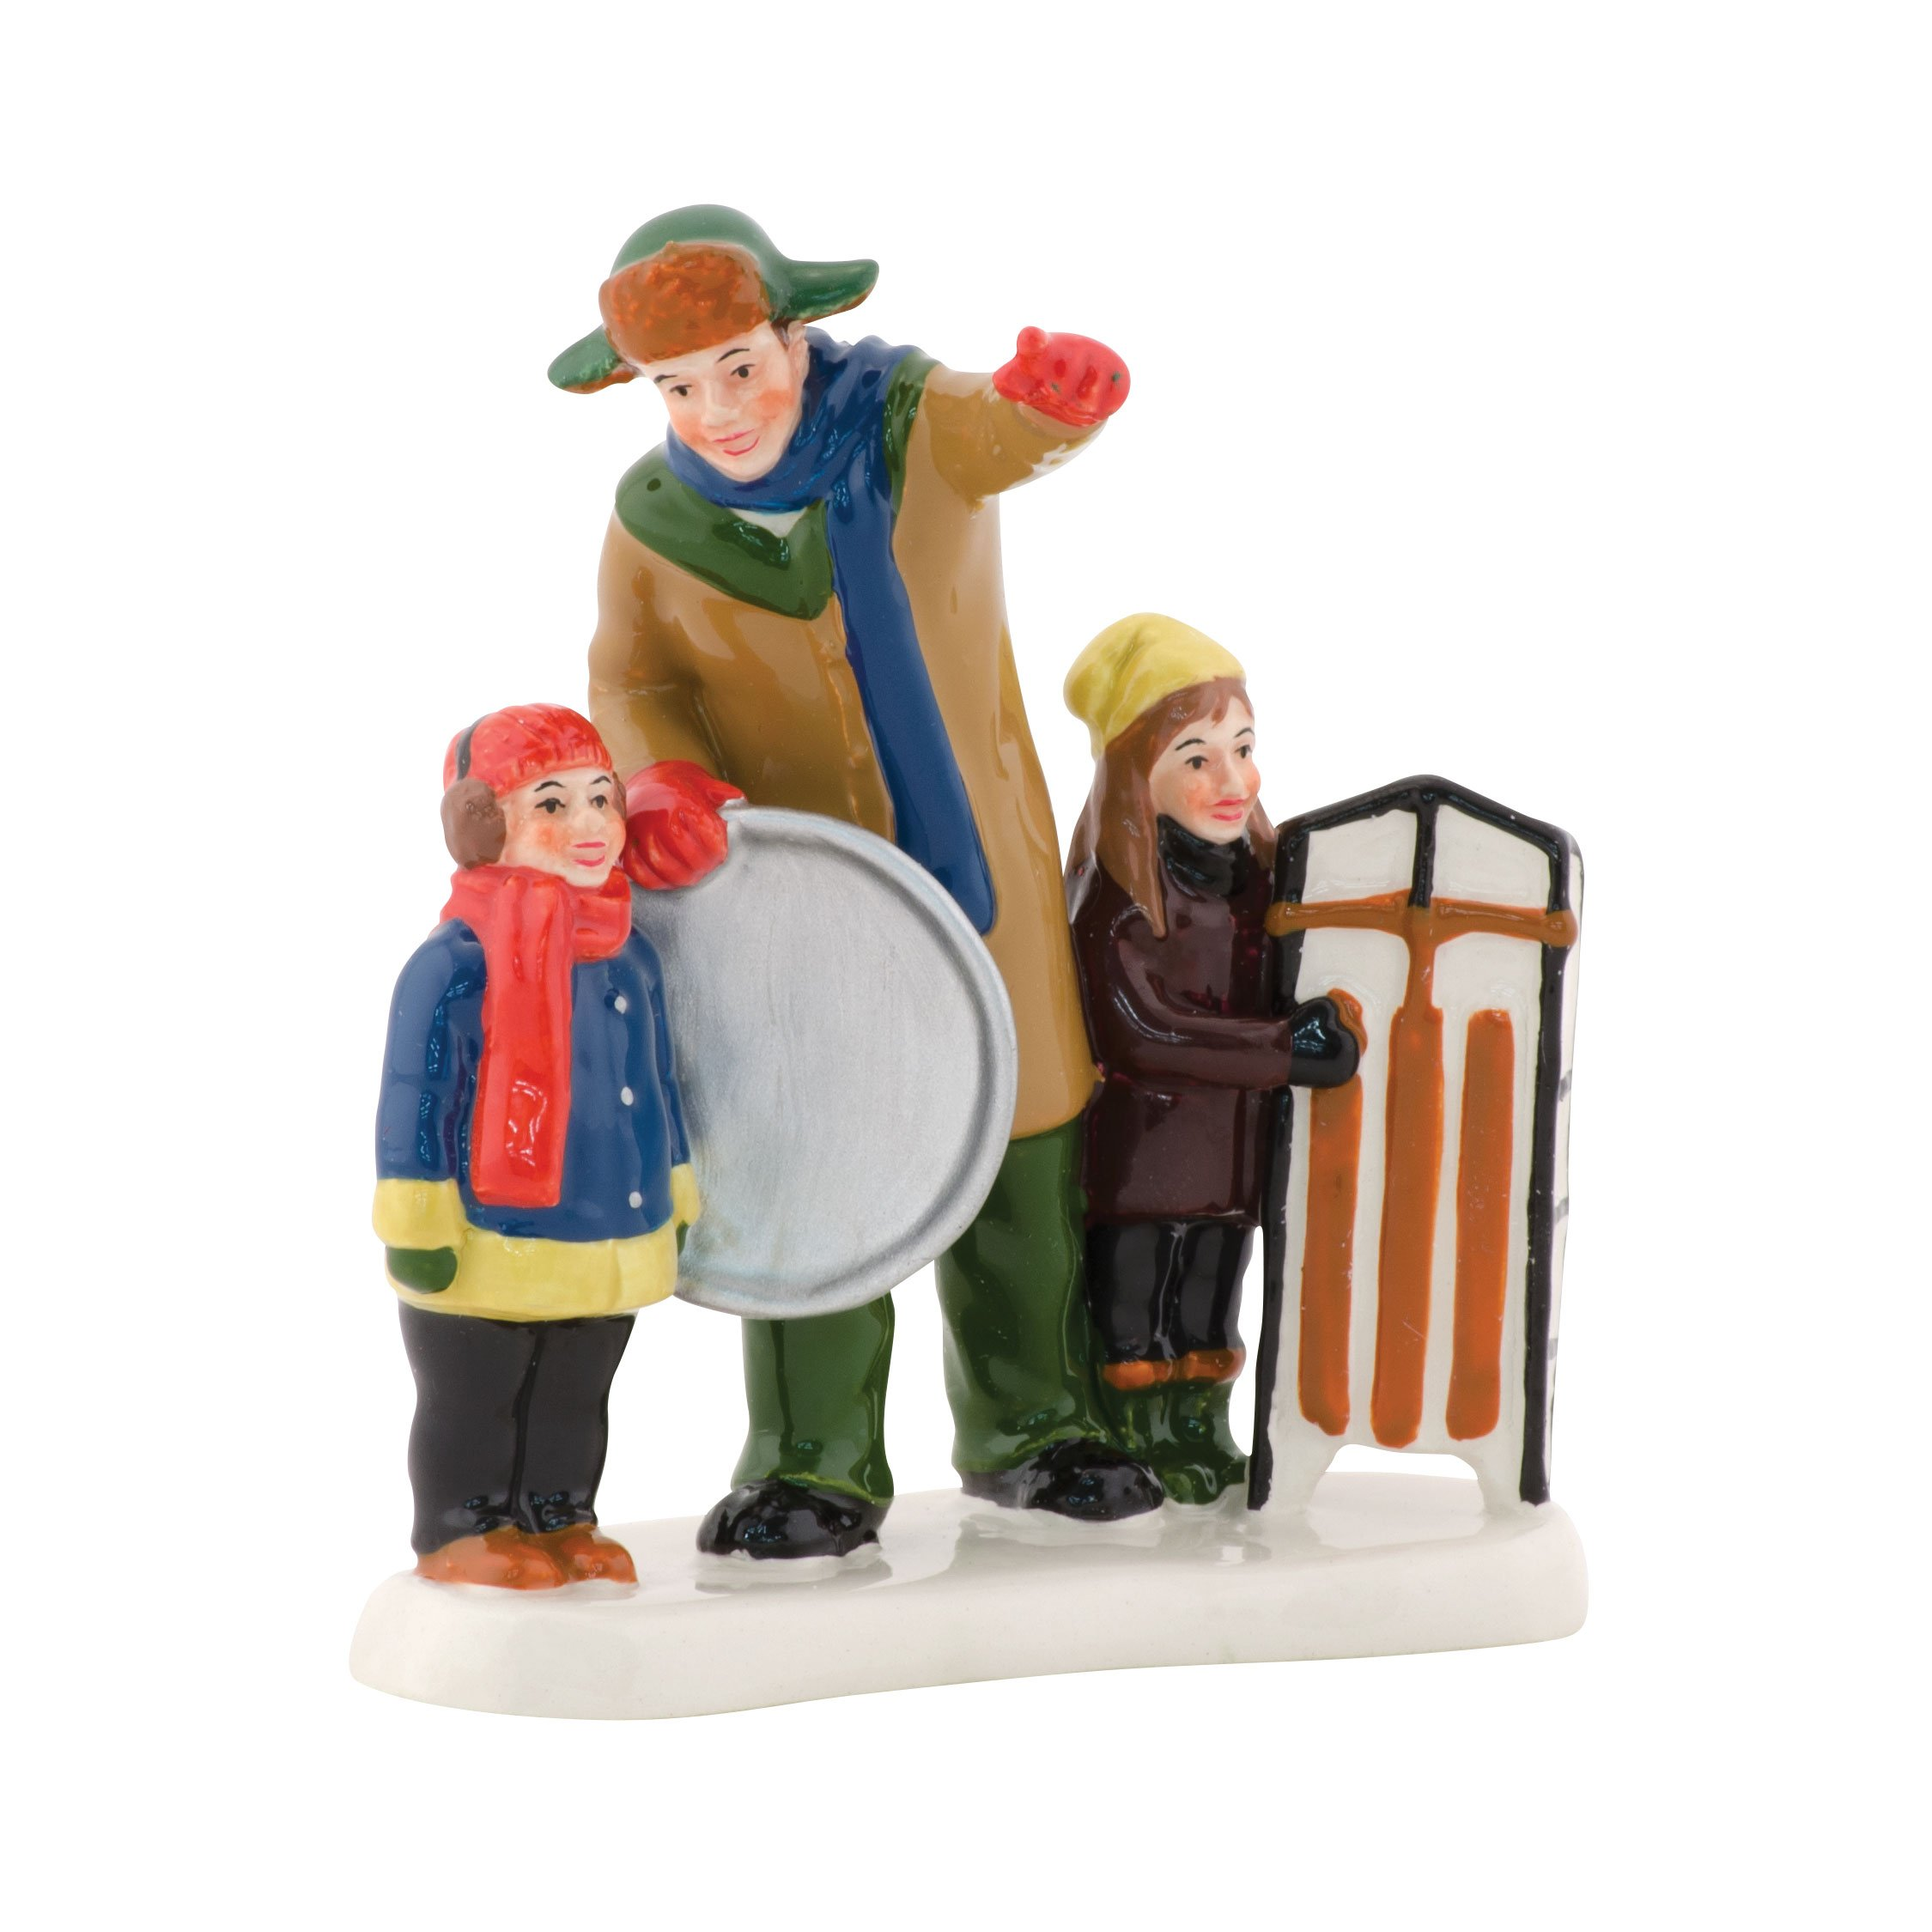 Department 56 Snow Village National Lampoon Christmas Vacation Bingo Accessory Figurine by Department 56